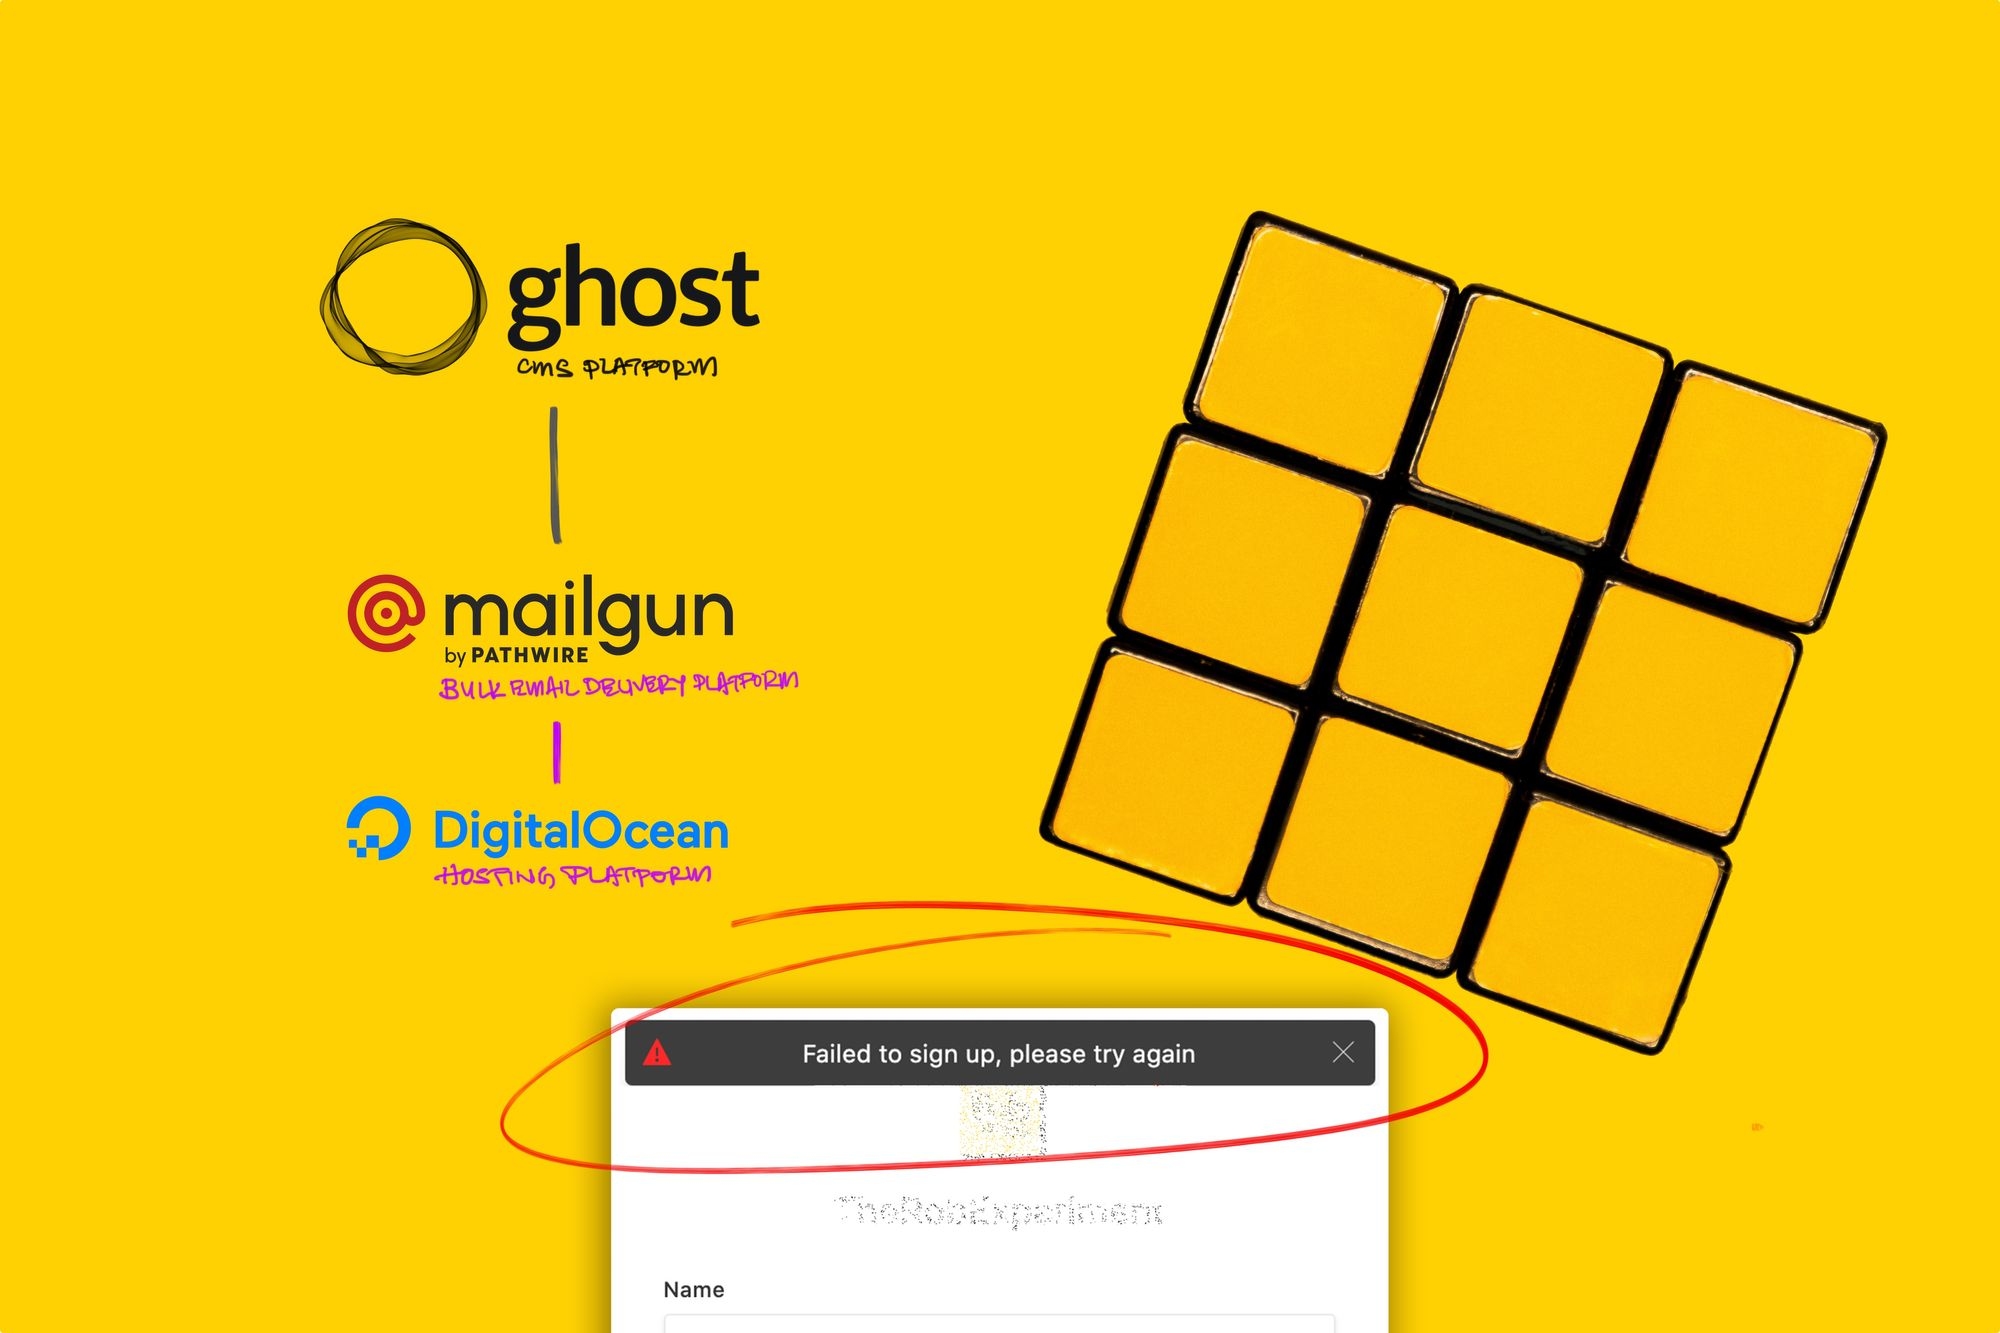 How To Install Mailgun To Enable Subscribe / Login Functions On Ghost Blogs On DigitalOcean—Solutions